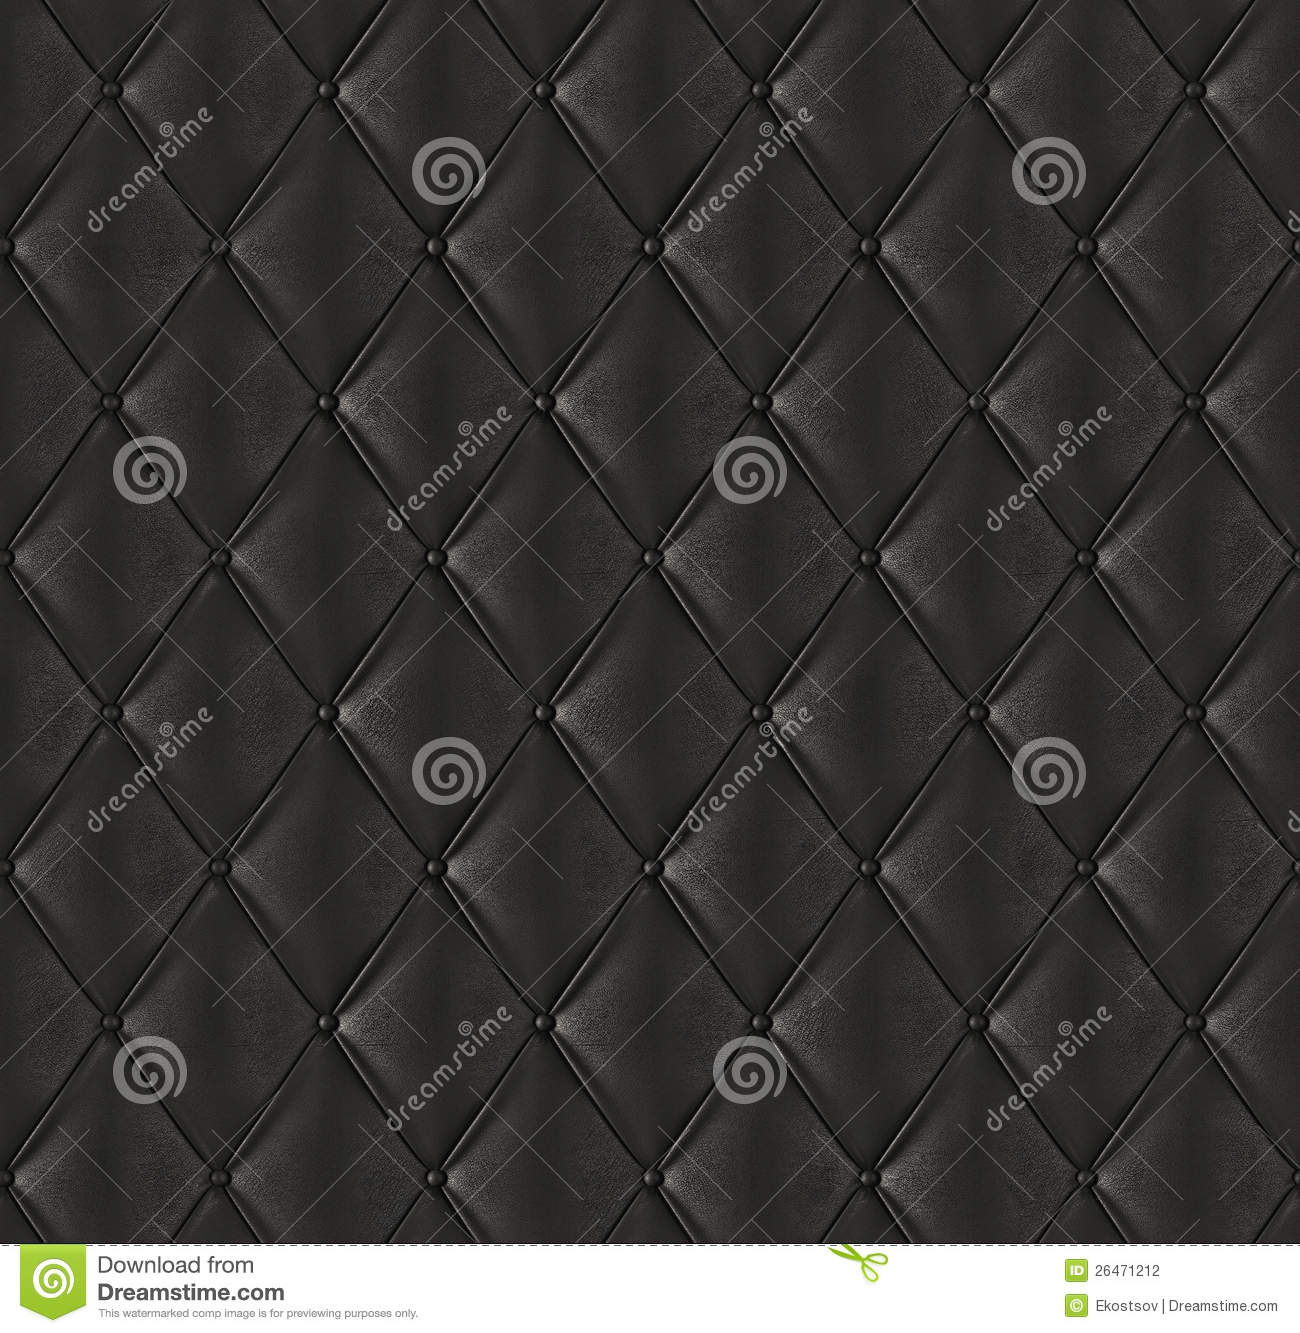 Black quilted leather stock illustration. Illustration of textured ... : black quilted leather - Adamdwight.com